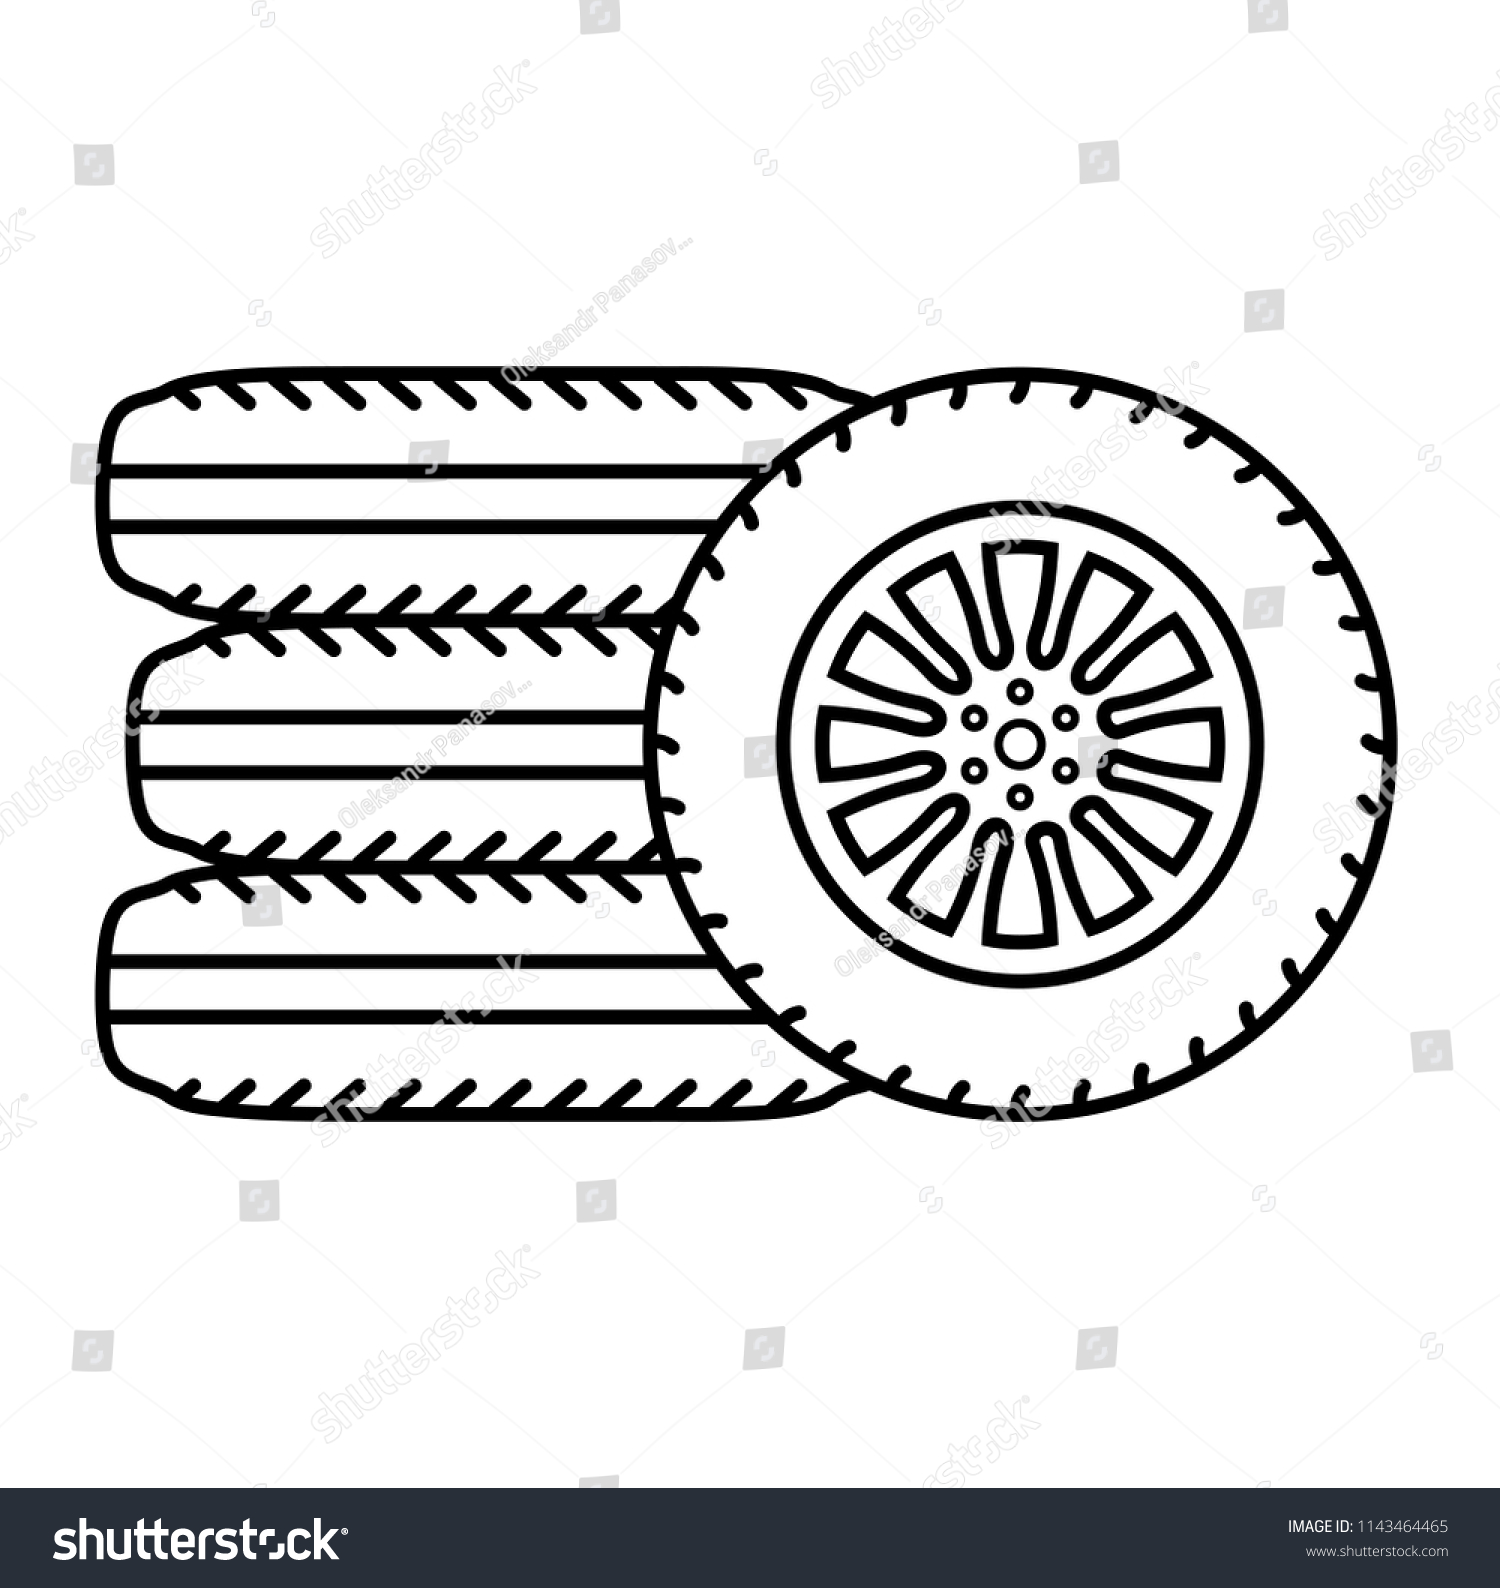 Outline Of Flat Tire Wiring Diagrams Stereo Circuit Audio Amplifier 595x476 Lm386 Car Tires Vector Icon Stock Royalty Free Rh Shutterstock Com